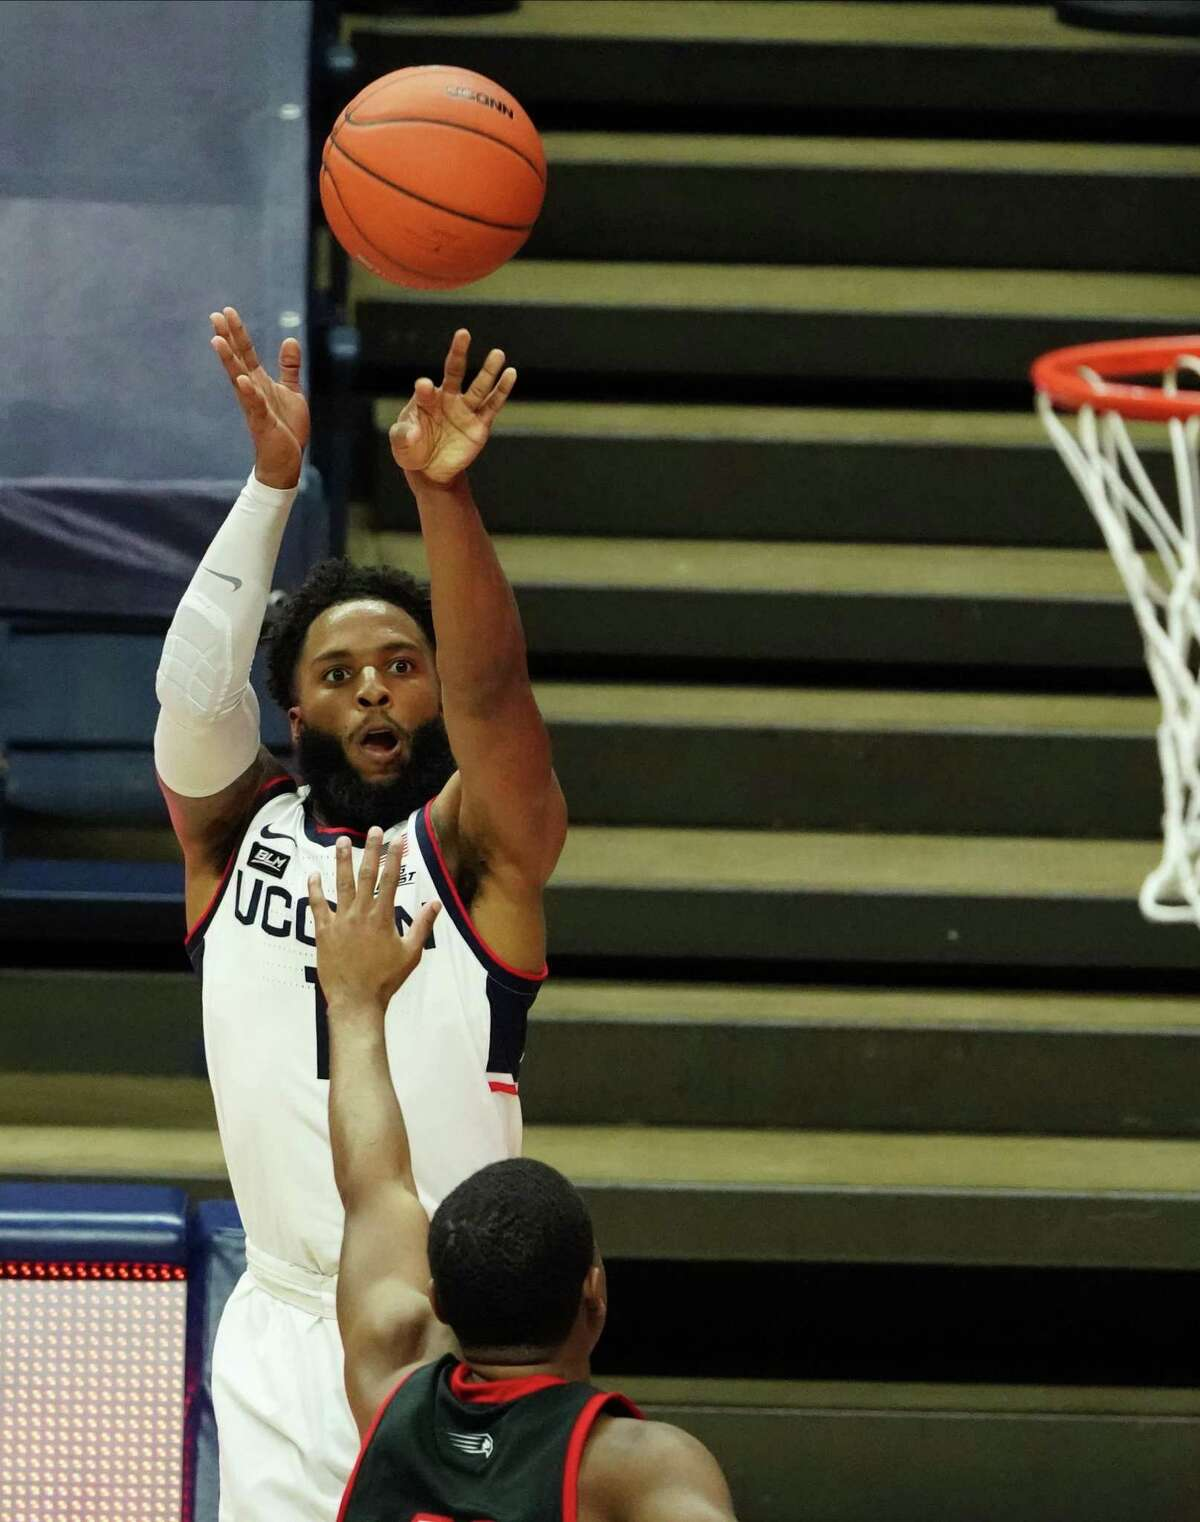 UConn Huskies guard R.J. Cole (1) shoots for three points against the Hartford Hawks in the first half at Harry A. Gampel Pavilion on Friday, Nov. 27, 2020 in Storrs, Connecticut.